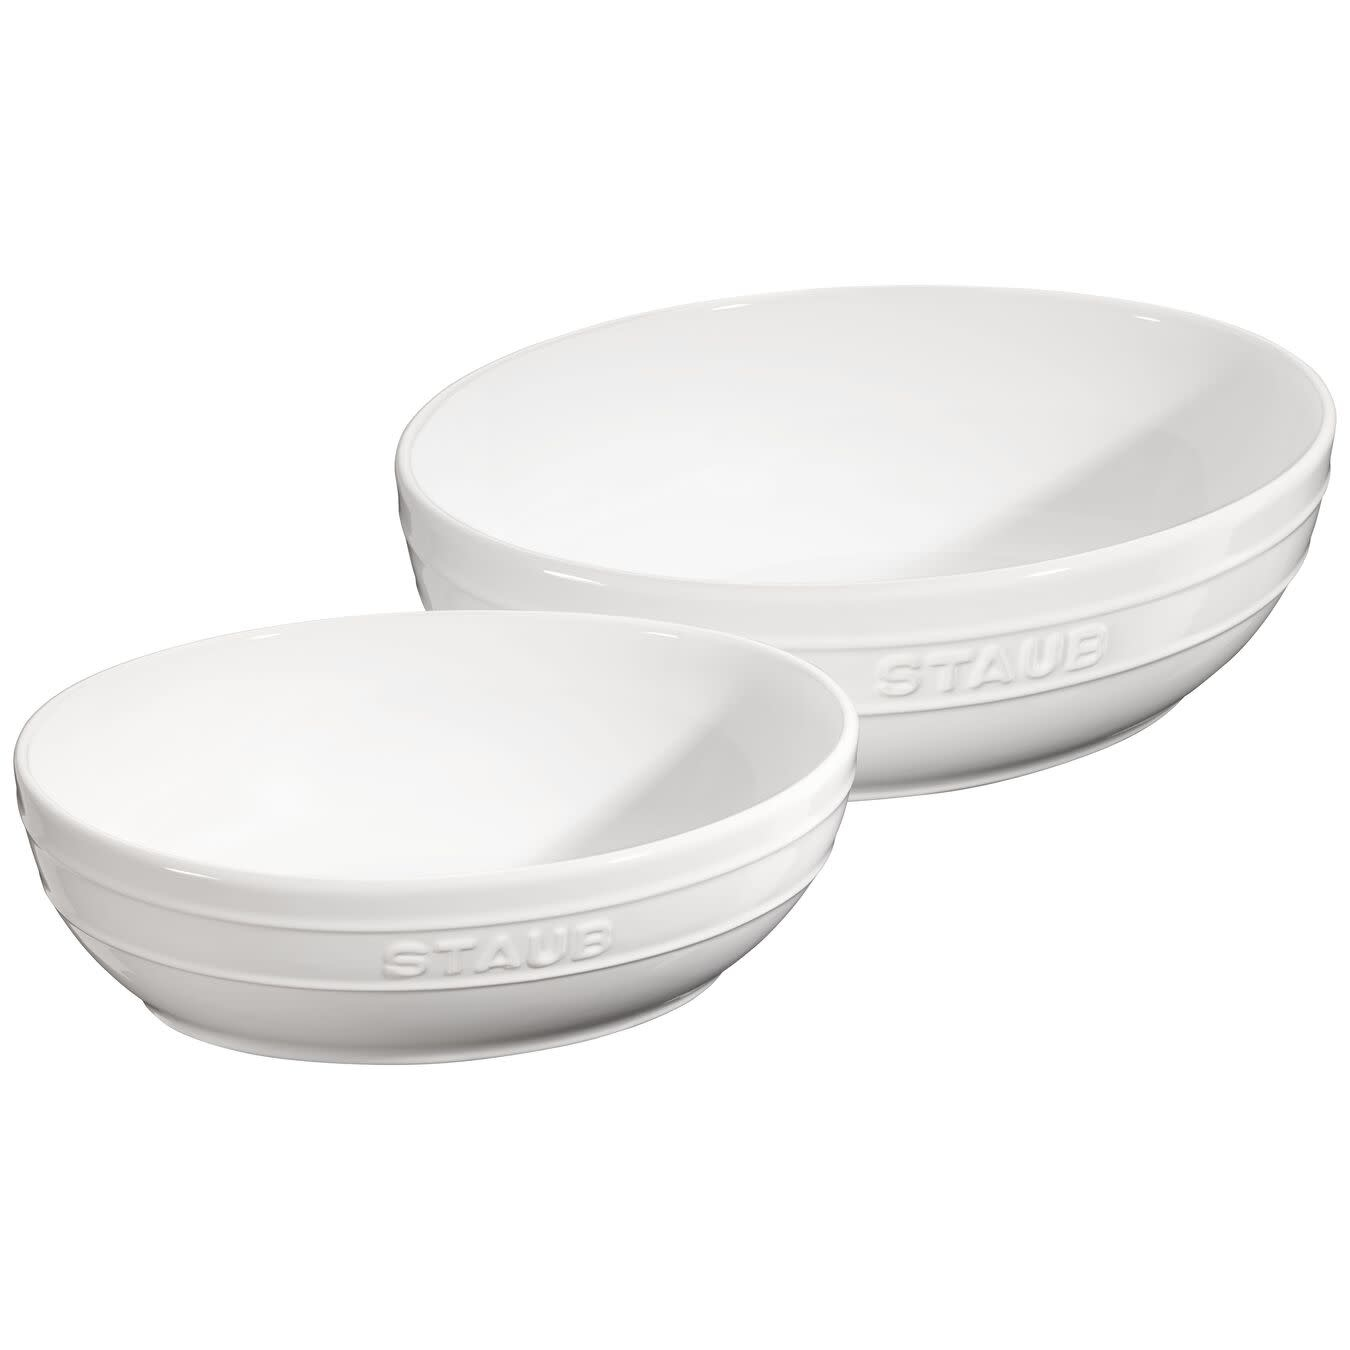 Staub Oval Multi Bowl White 2pc Set